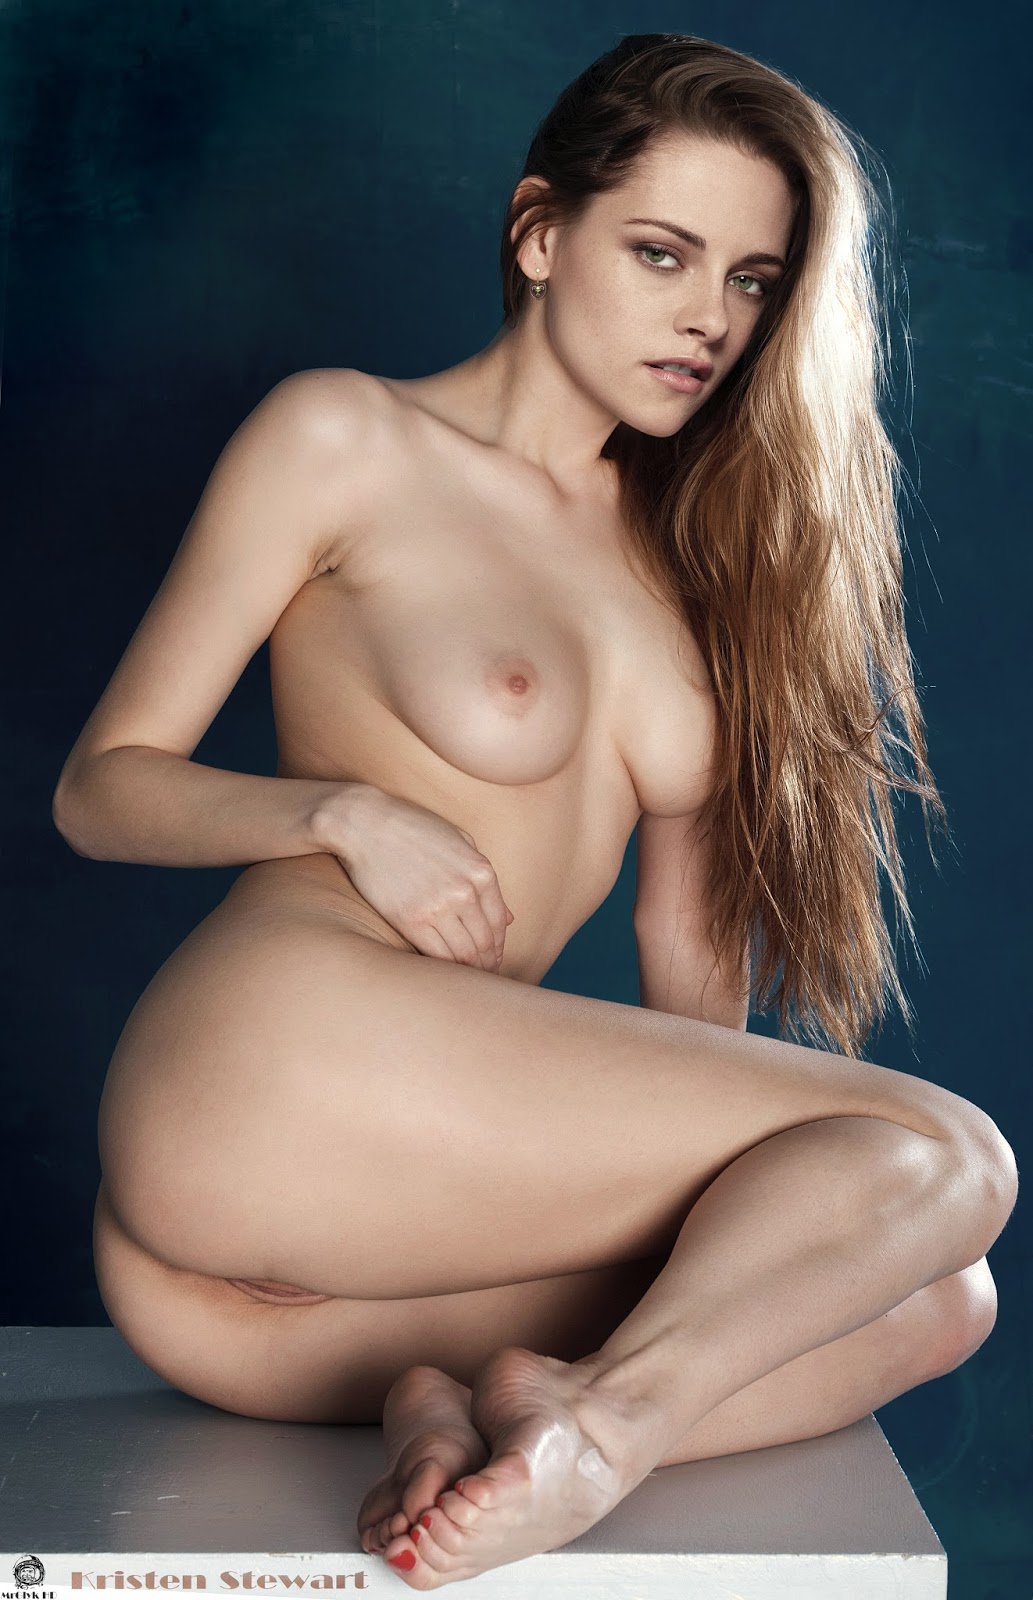 adult nude fourm